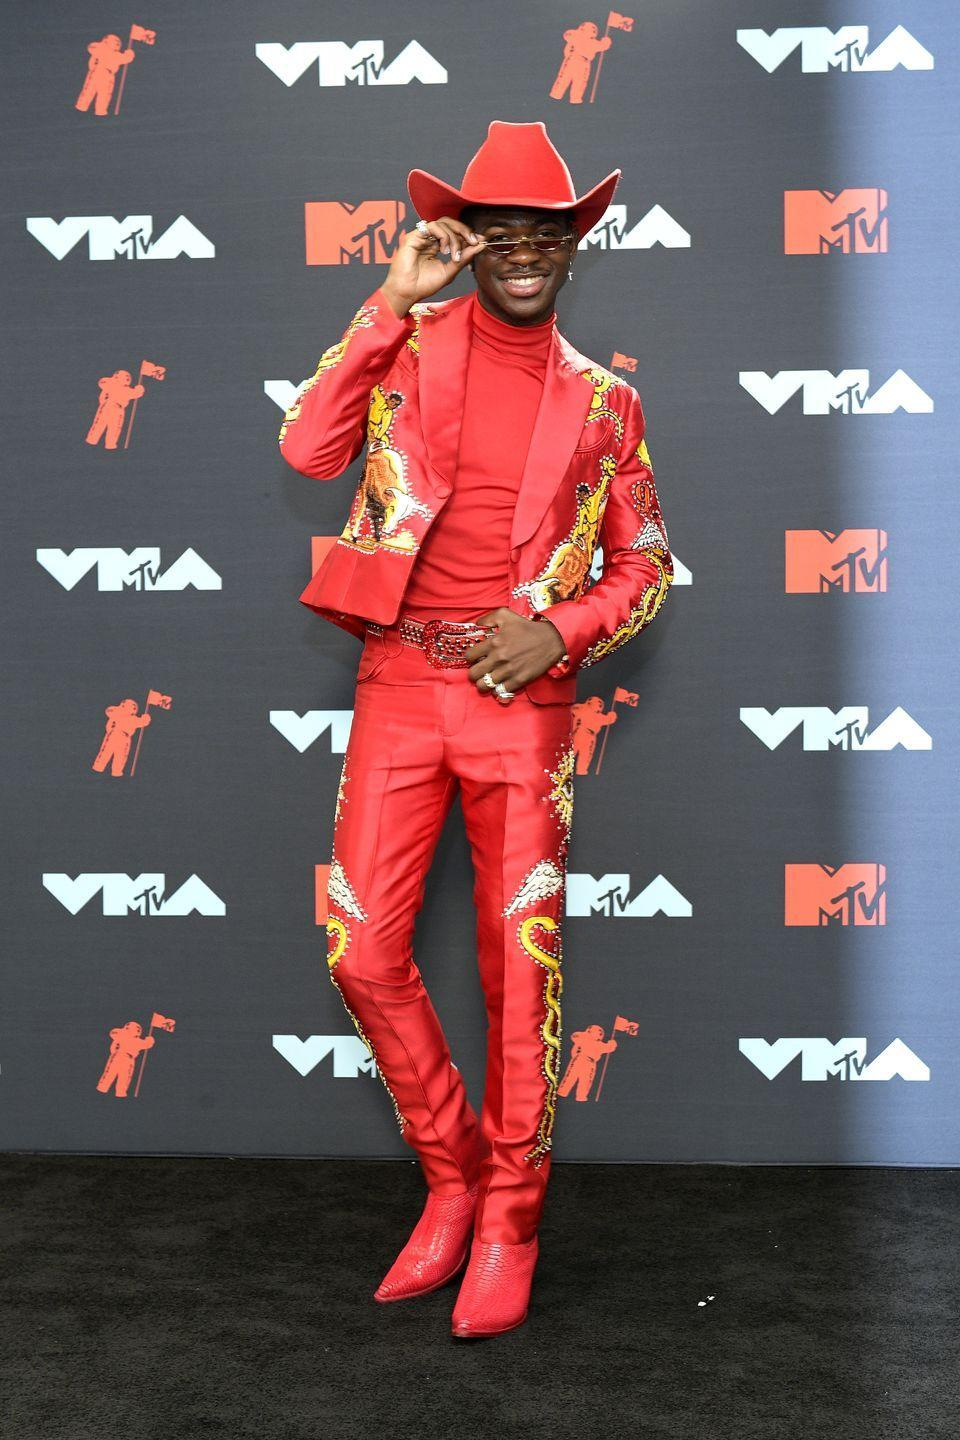 <p>At the MTV VMAs he came through in all red! The embroidery on this blazer and pants was absolutely gorgeous. Flaming Hot Cheetos could never. </p>